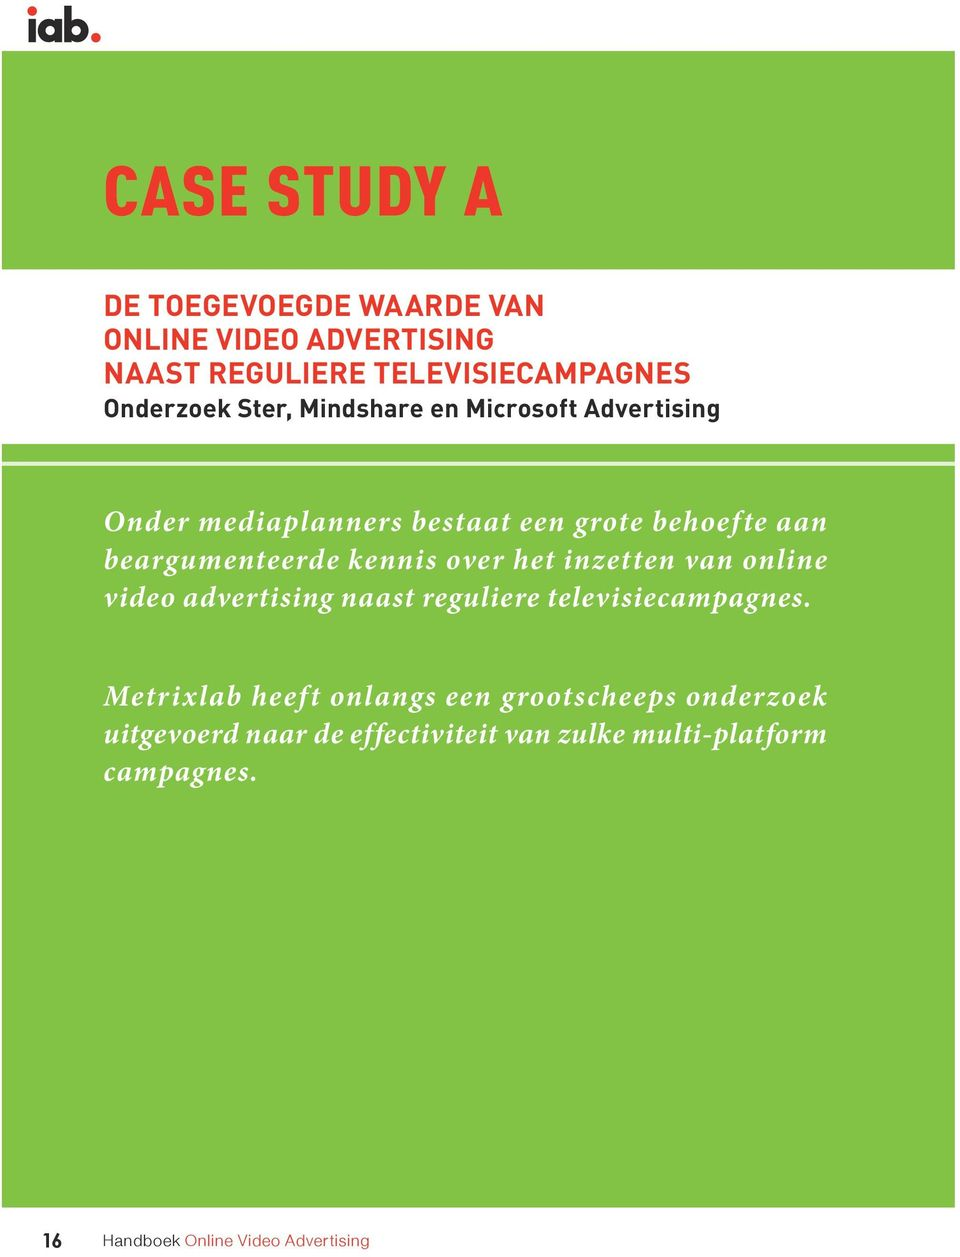 het inzetten van online video advertising naast reguliere televisiecampagnes.